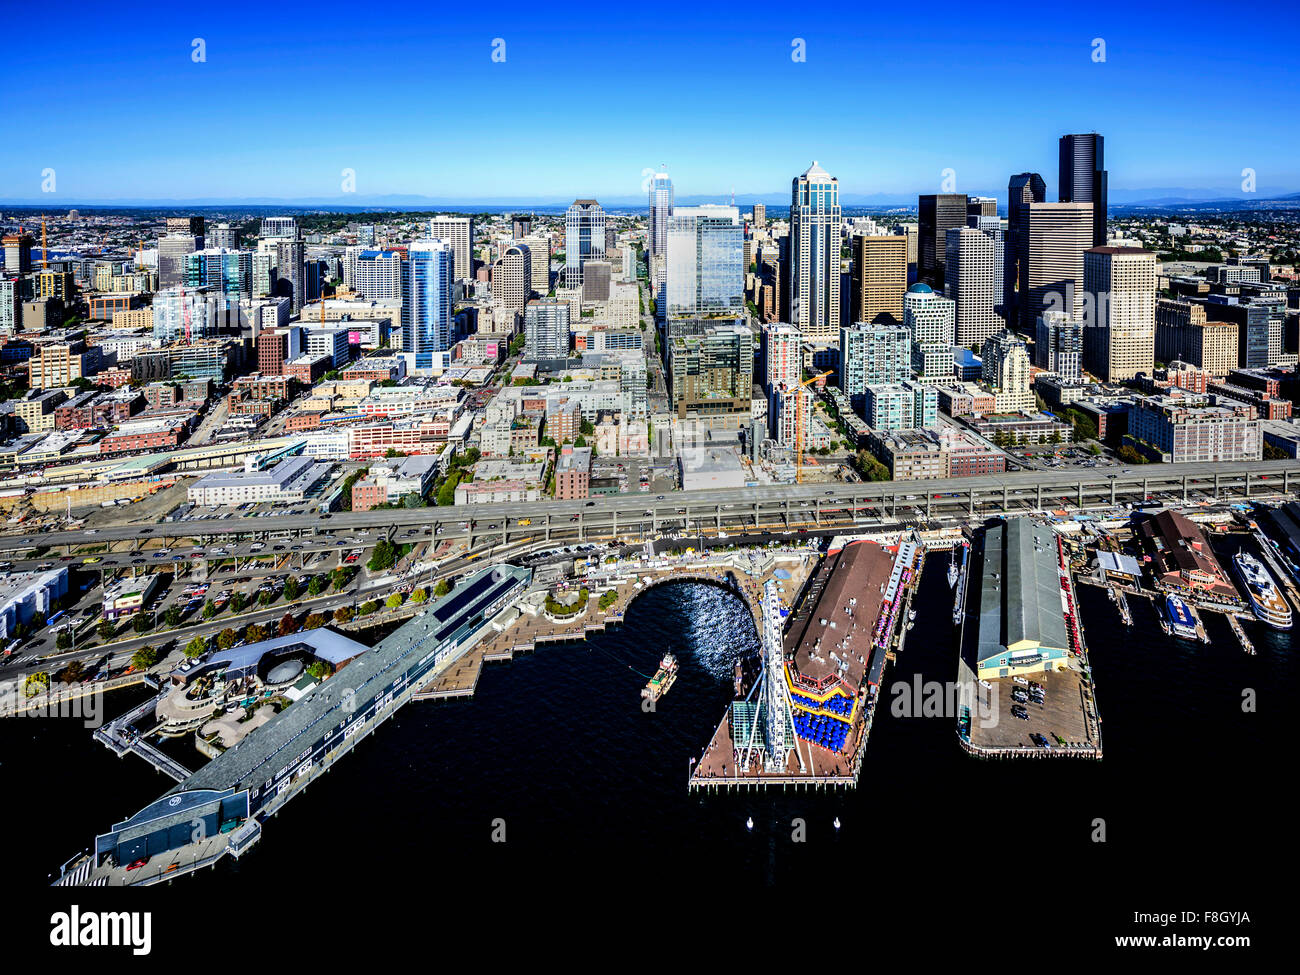 Aerial view of Seattle waterfront and cityscape, Washington, United States - Stock Image